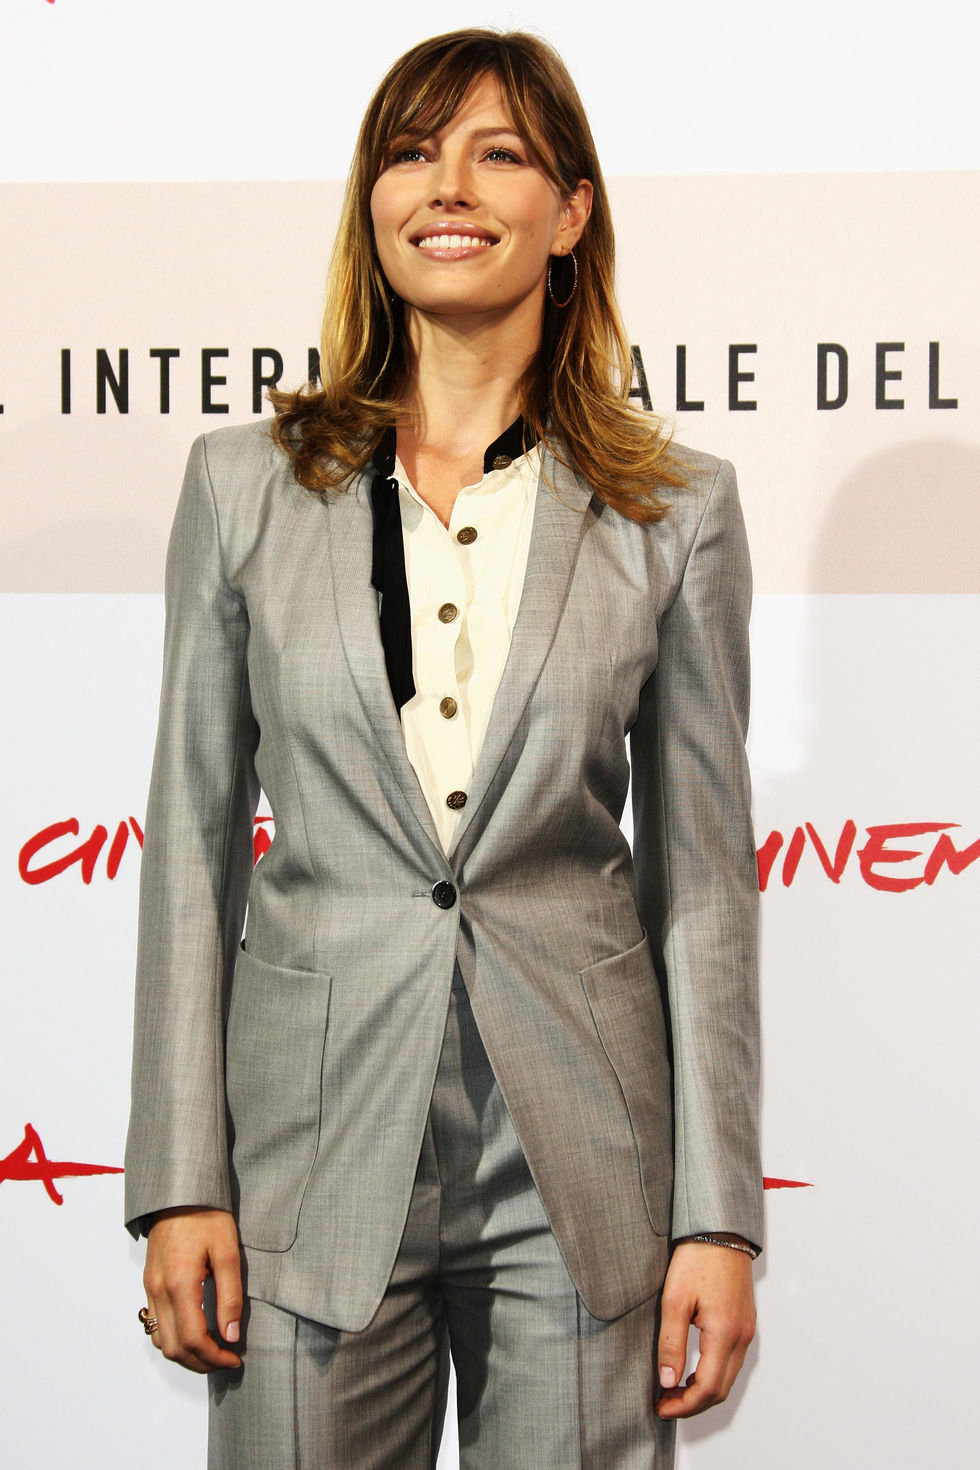 jessica-biel-easy-virtue-premiere-in-rome-01